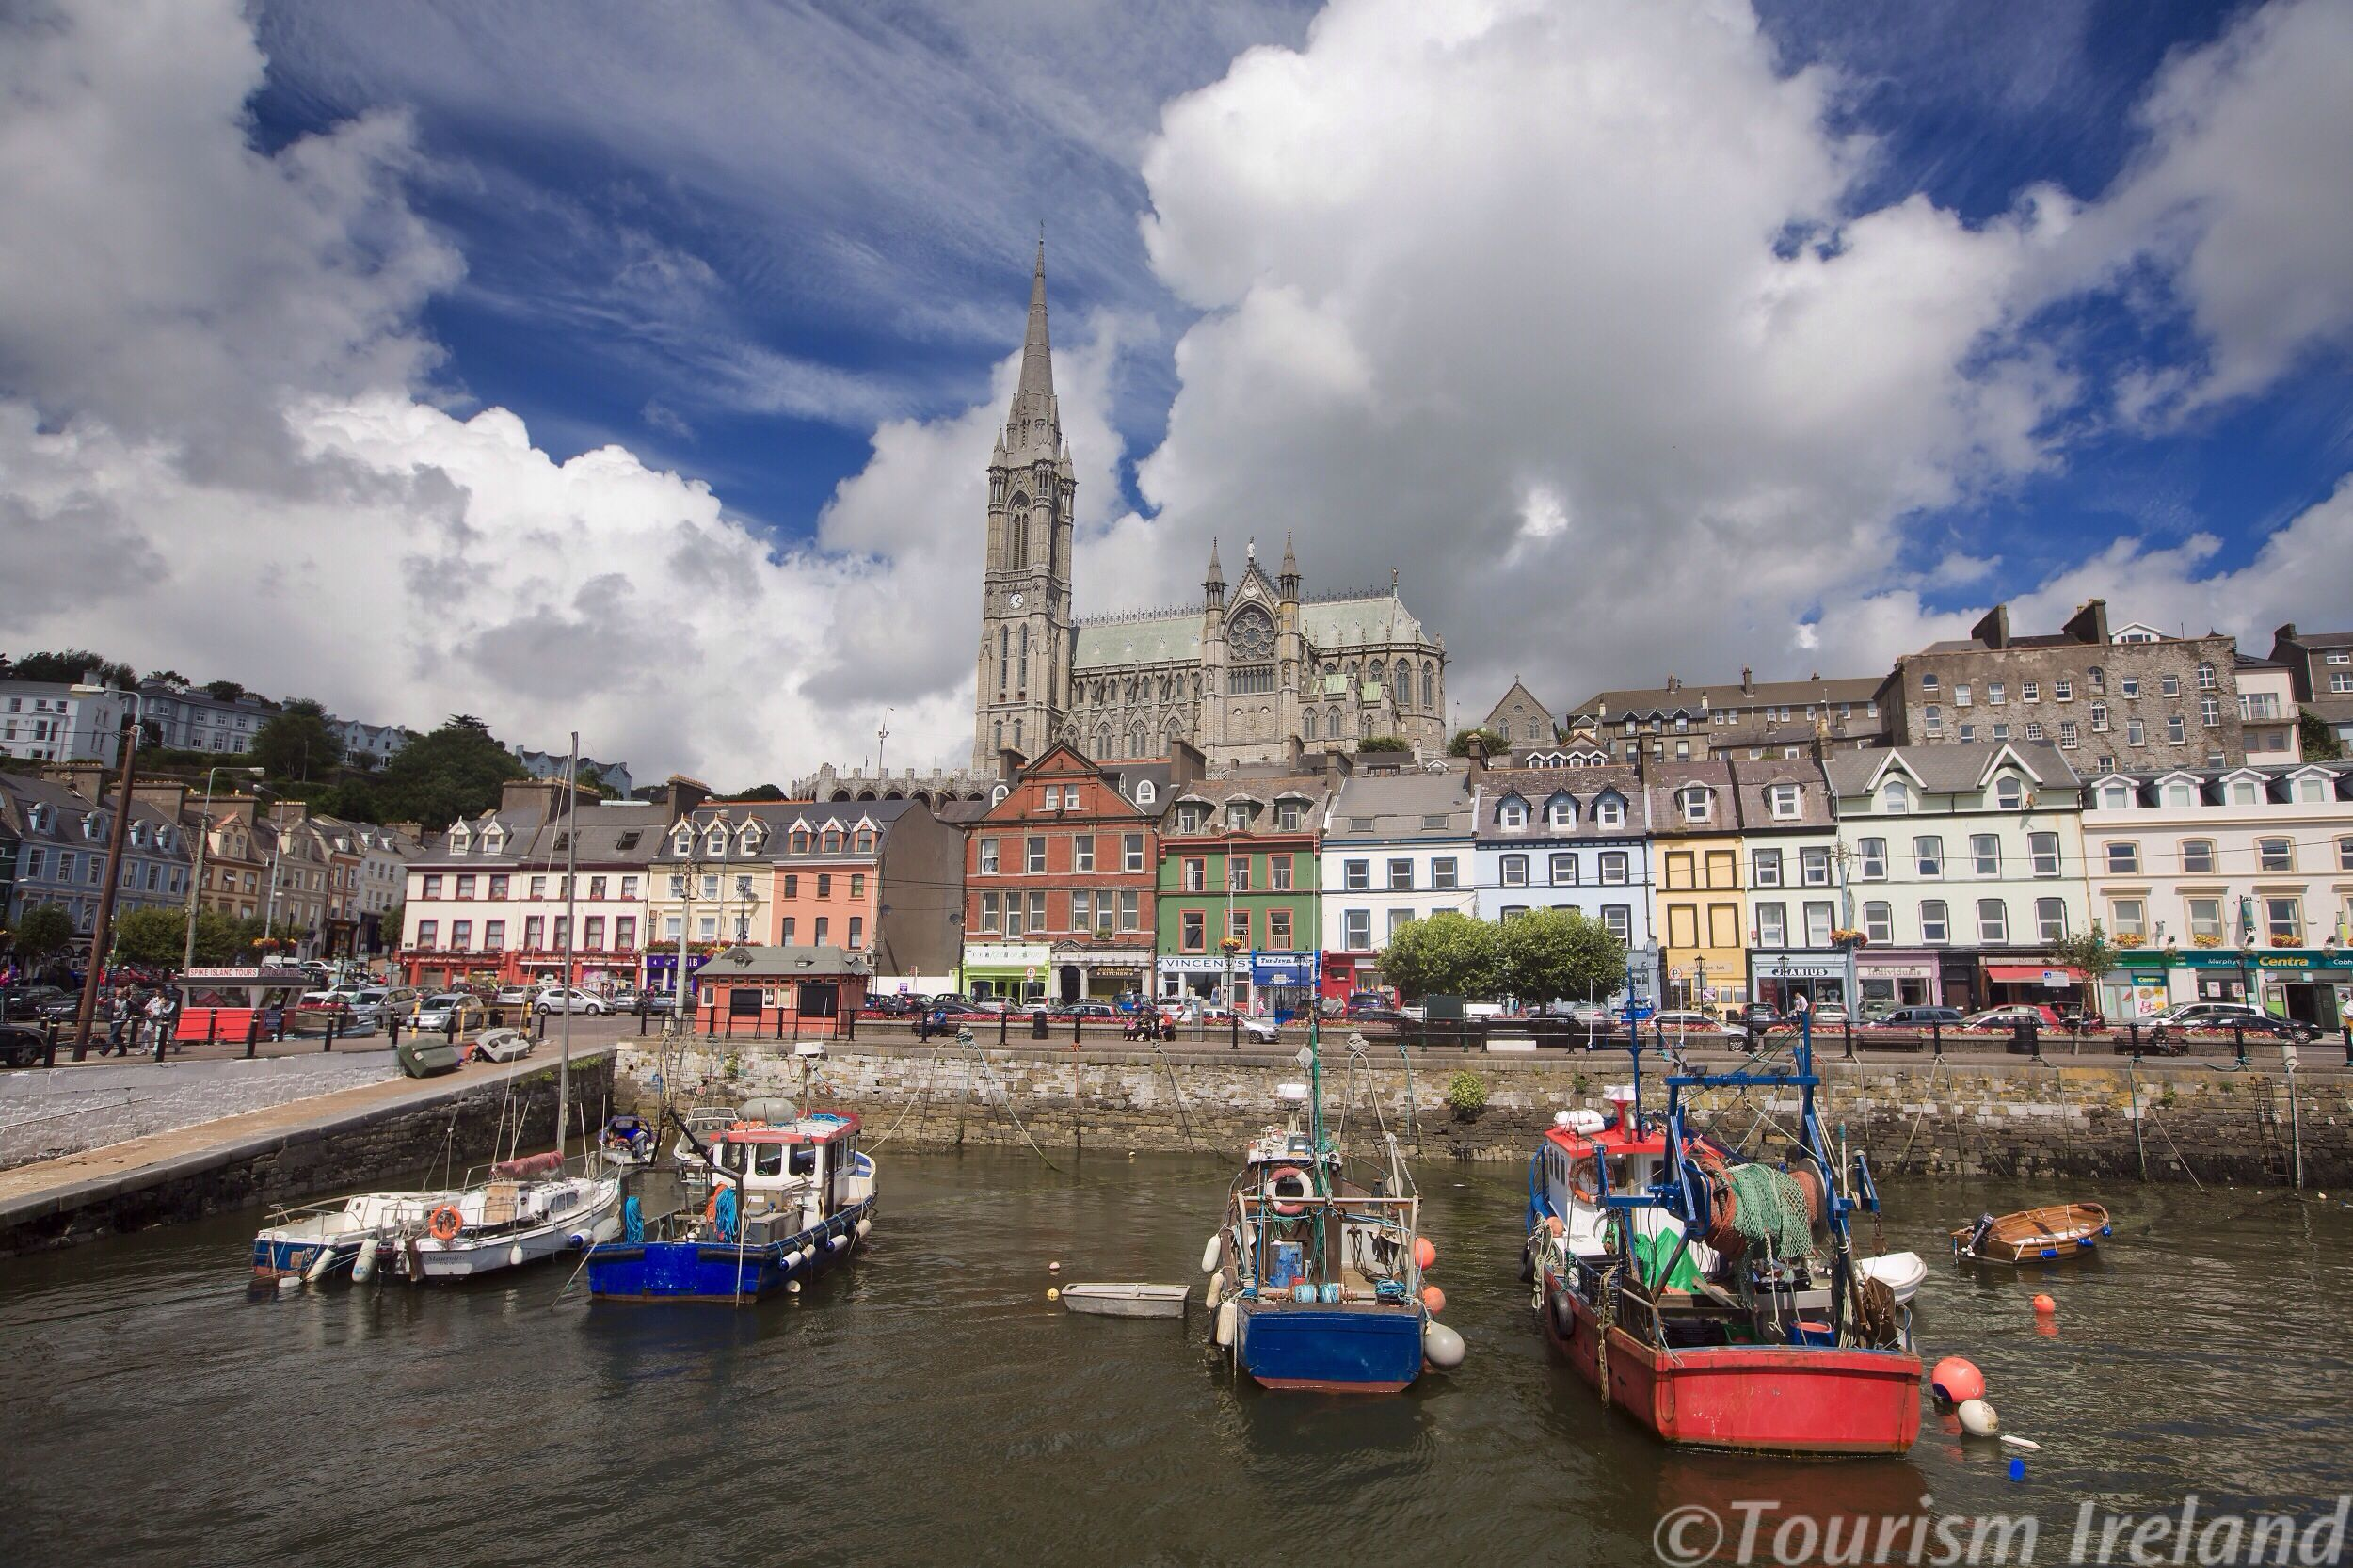 Cobh 2020: Top 10 Tours & Activities (with Photos) - Things to